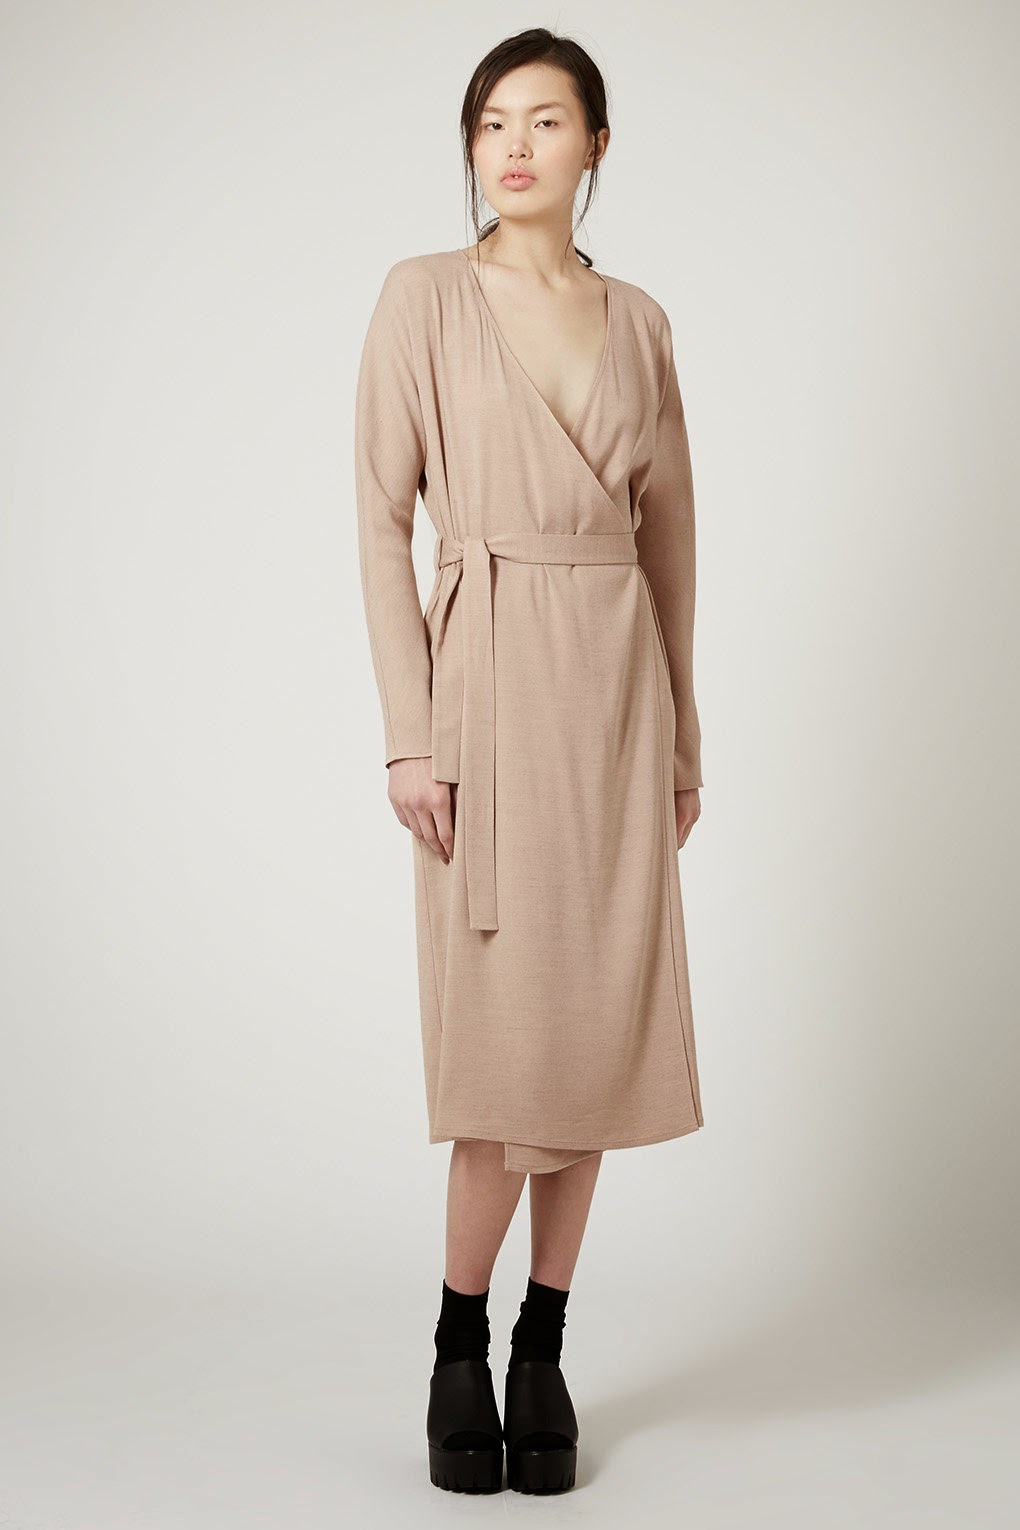 topshop wrap dress, topshop tie waist dress,